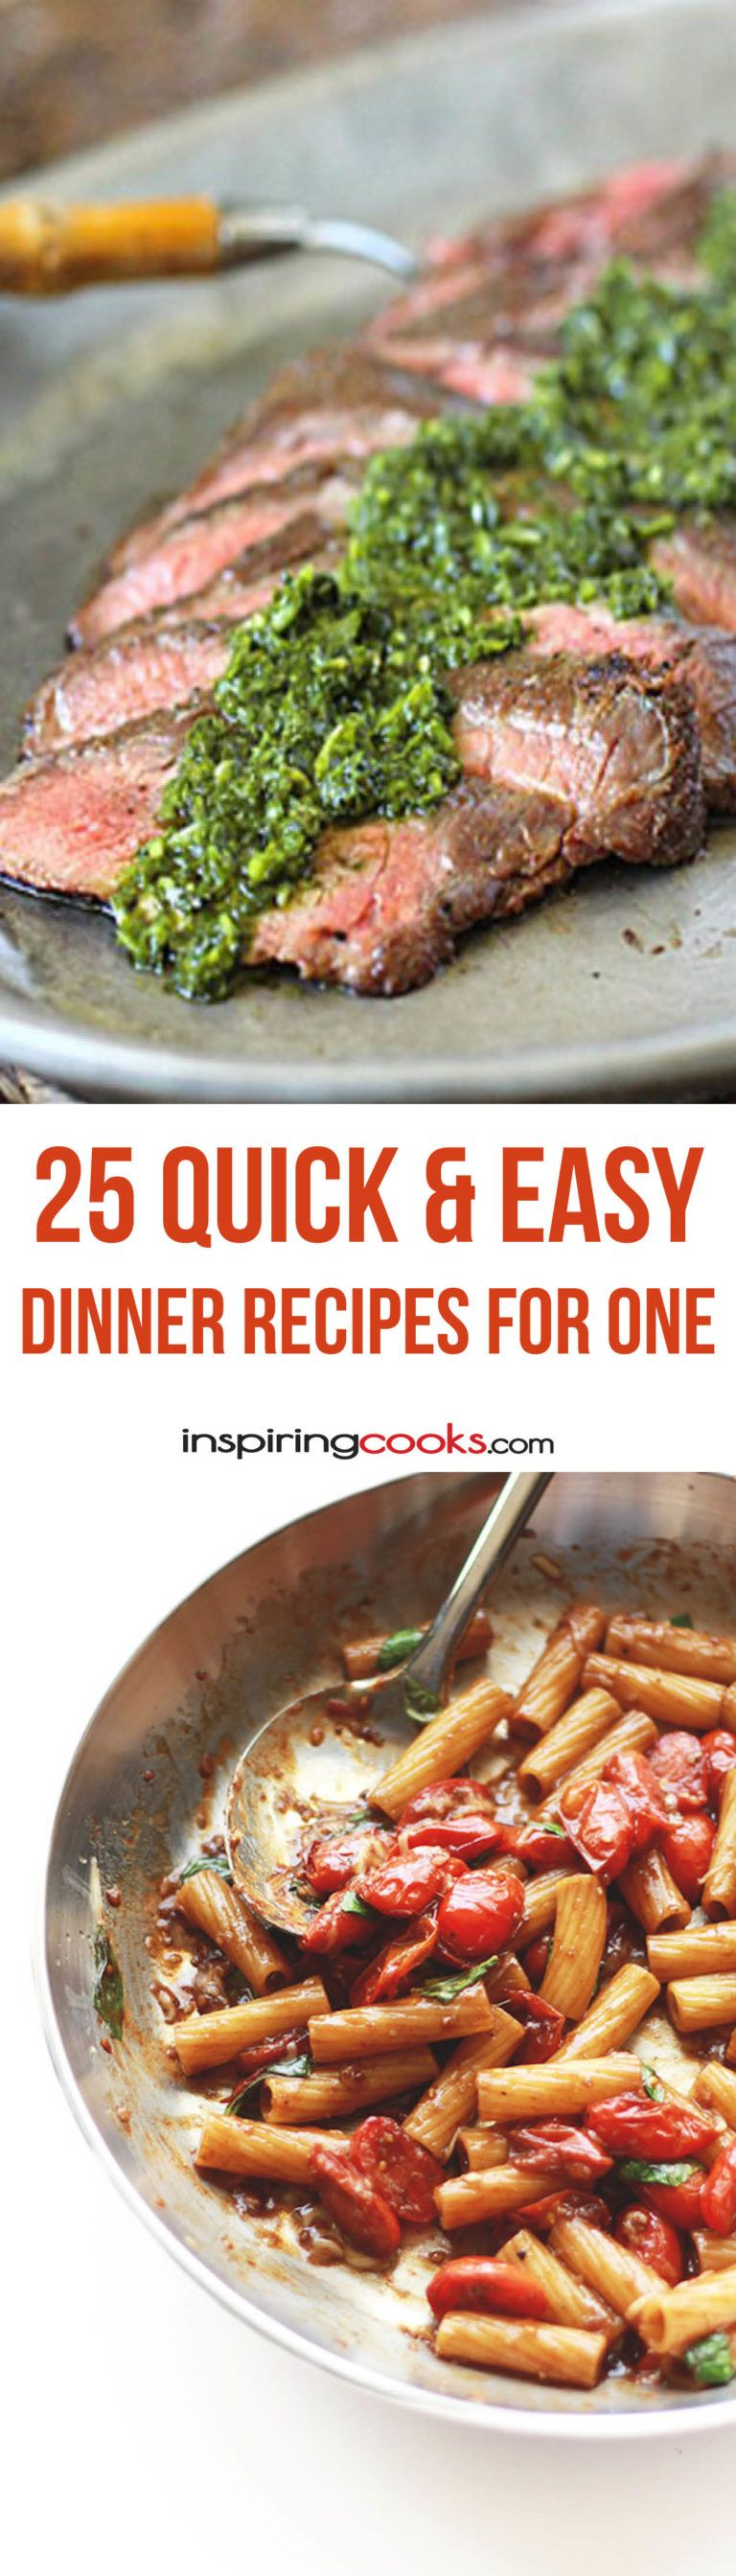 9 quick easy single dinner recipes for one person recetas para 25 quick easy dinner recipes for one person more forumfinder Choice Image